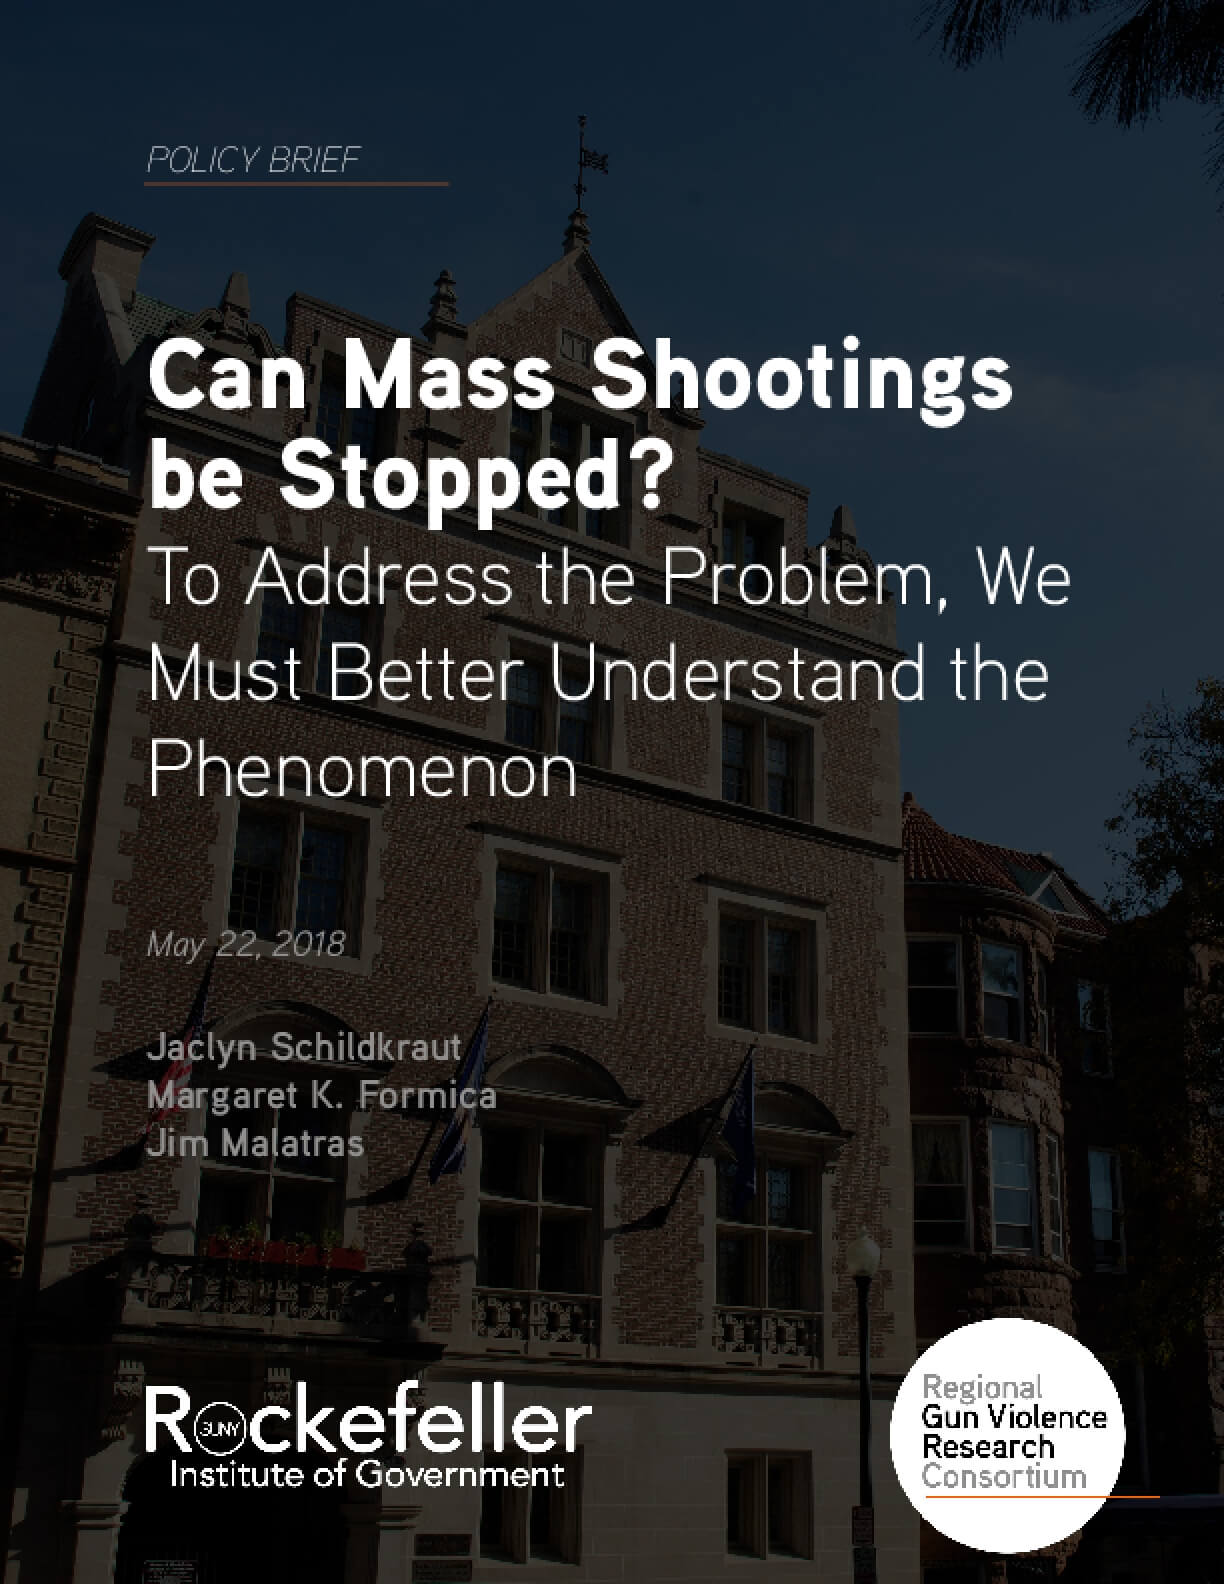 Can Mass Shootings  be Stopped? To Address the Problem, We Must Better Understand the Phenomenon